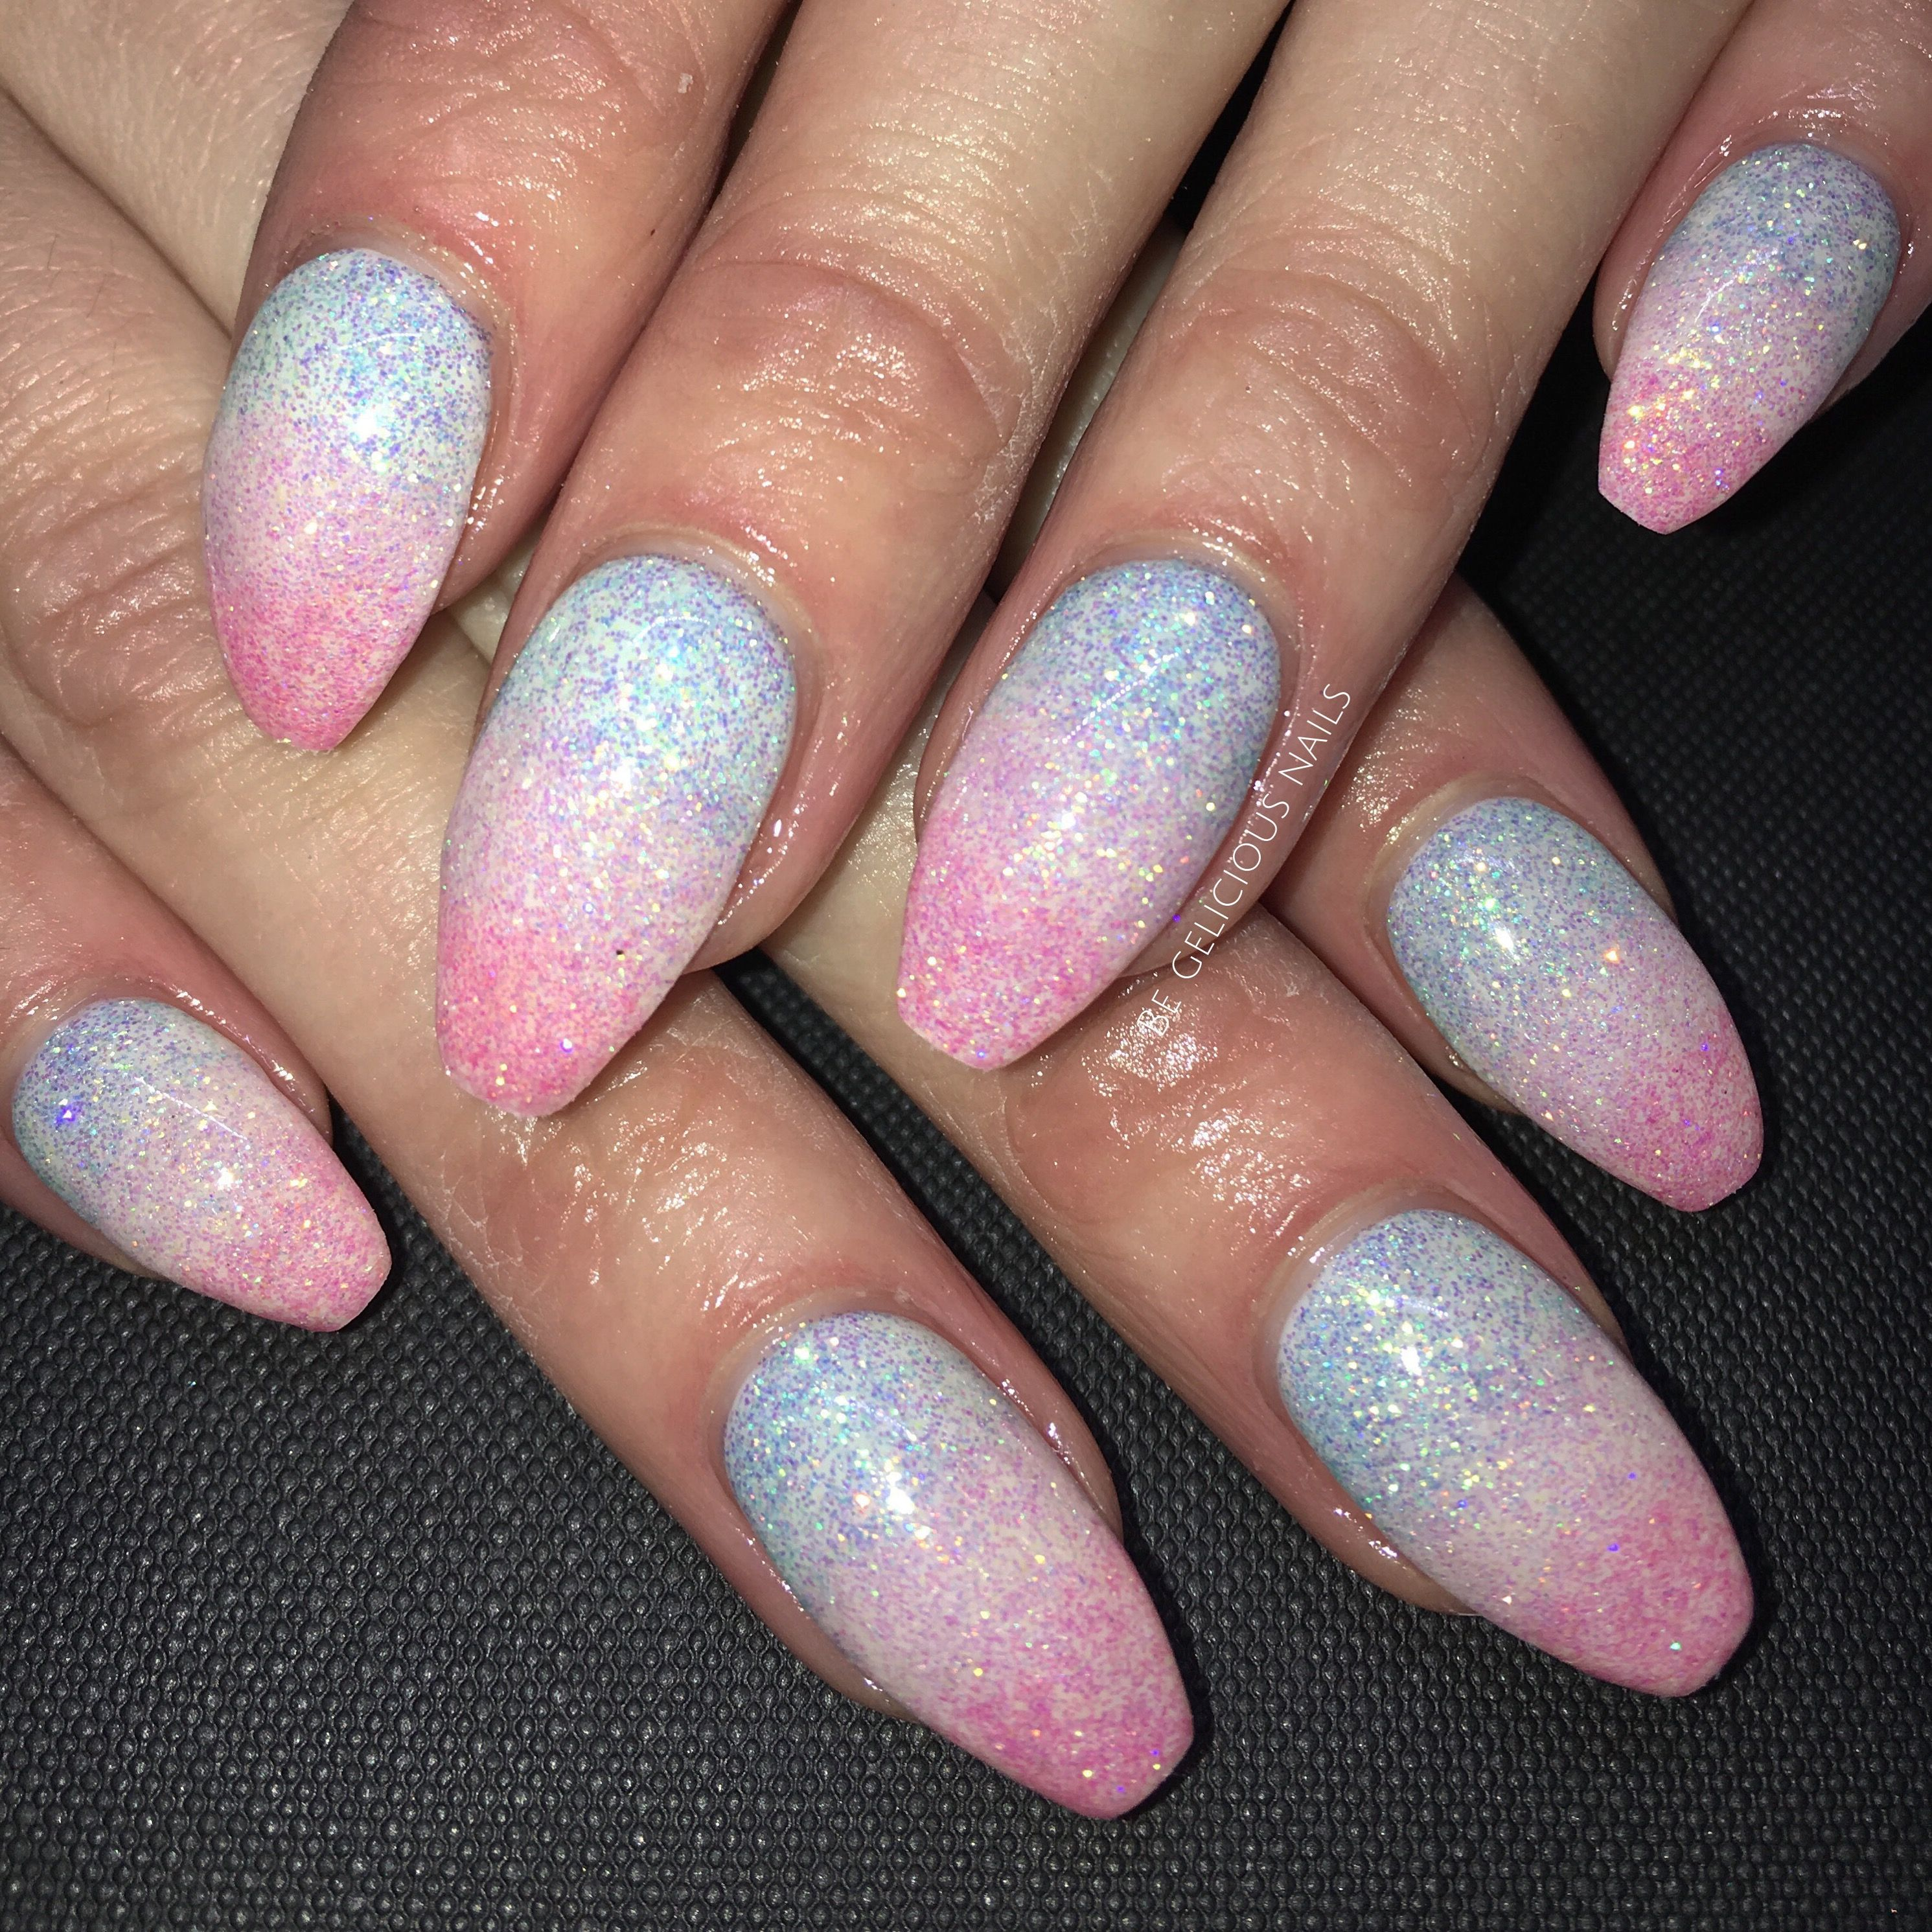 unicorn nails 🦄 calgel nails, nail art, nail design, gel nails